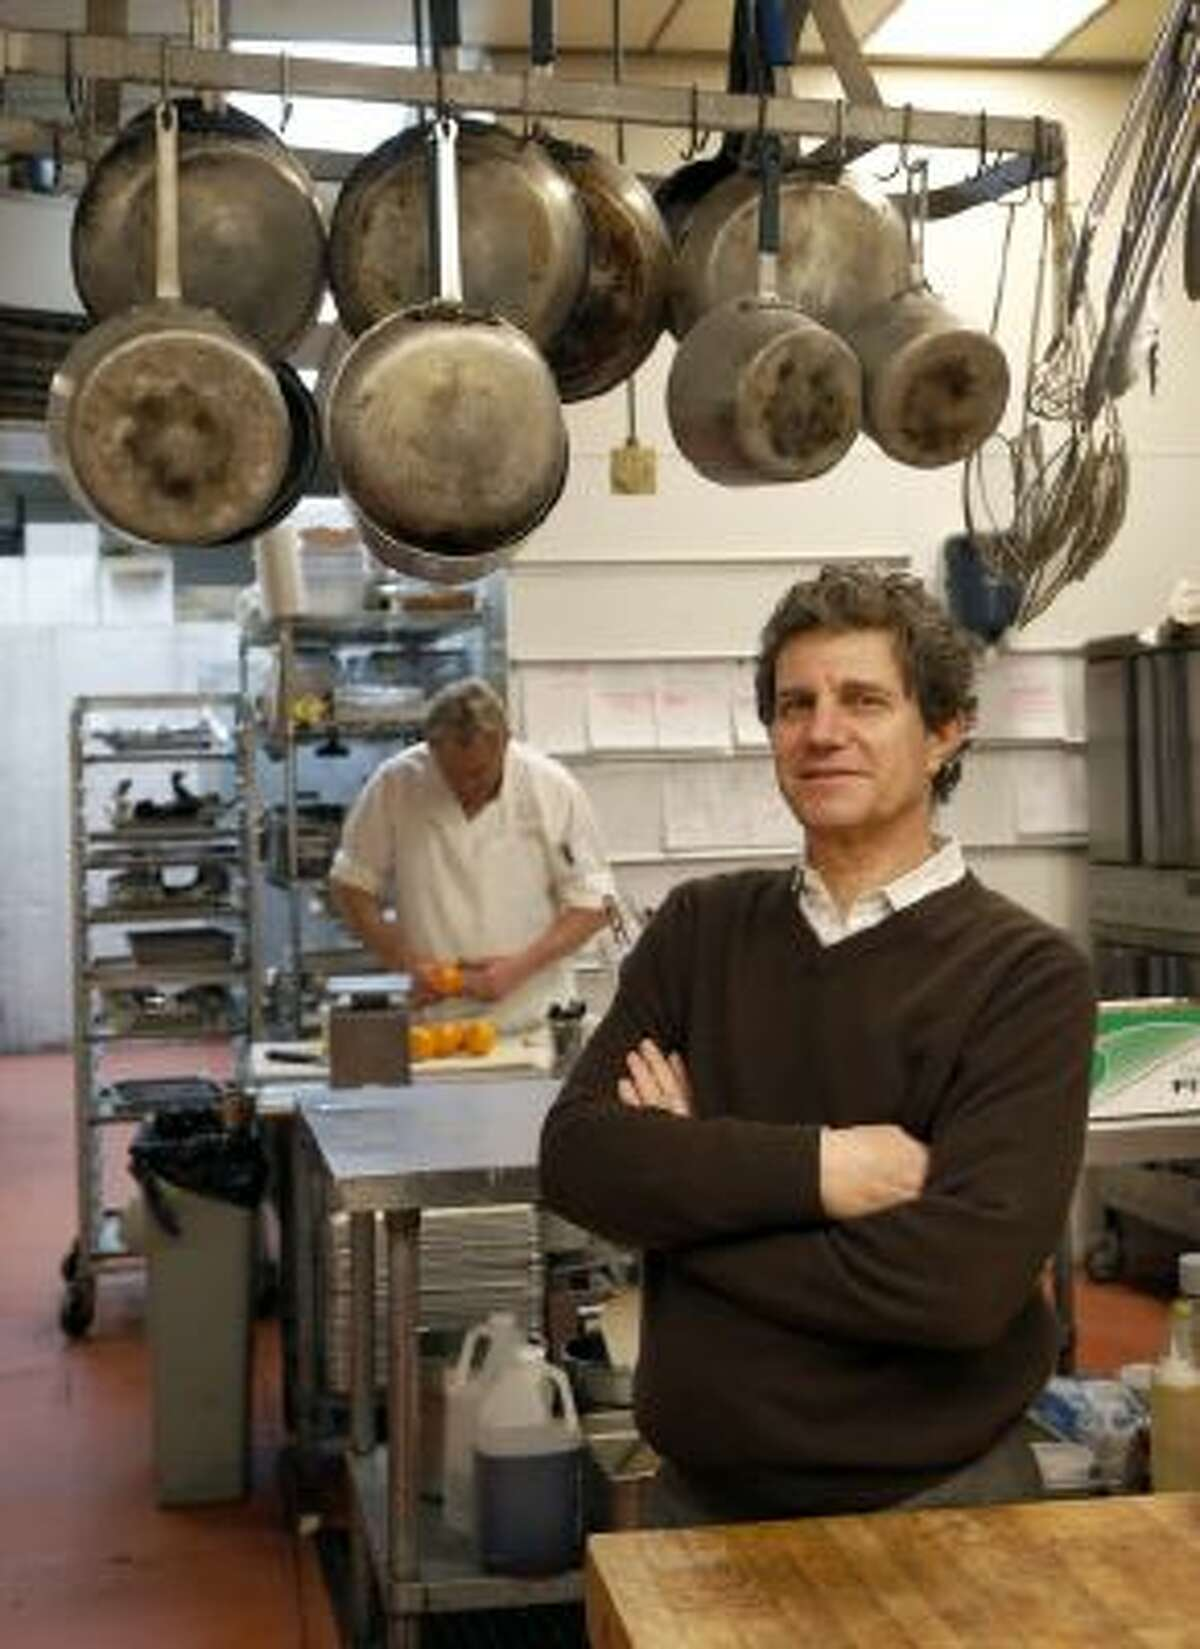 David Borris, owner of Hel's Kitchen Catering in Northbrook, Ill., poses for a photo in his company's kitchen. Borris said the health law doesn'?t affect his hiring.